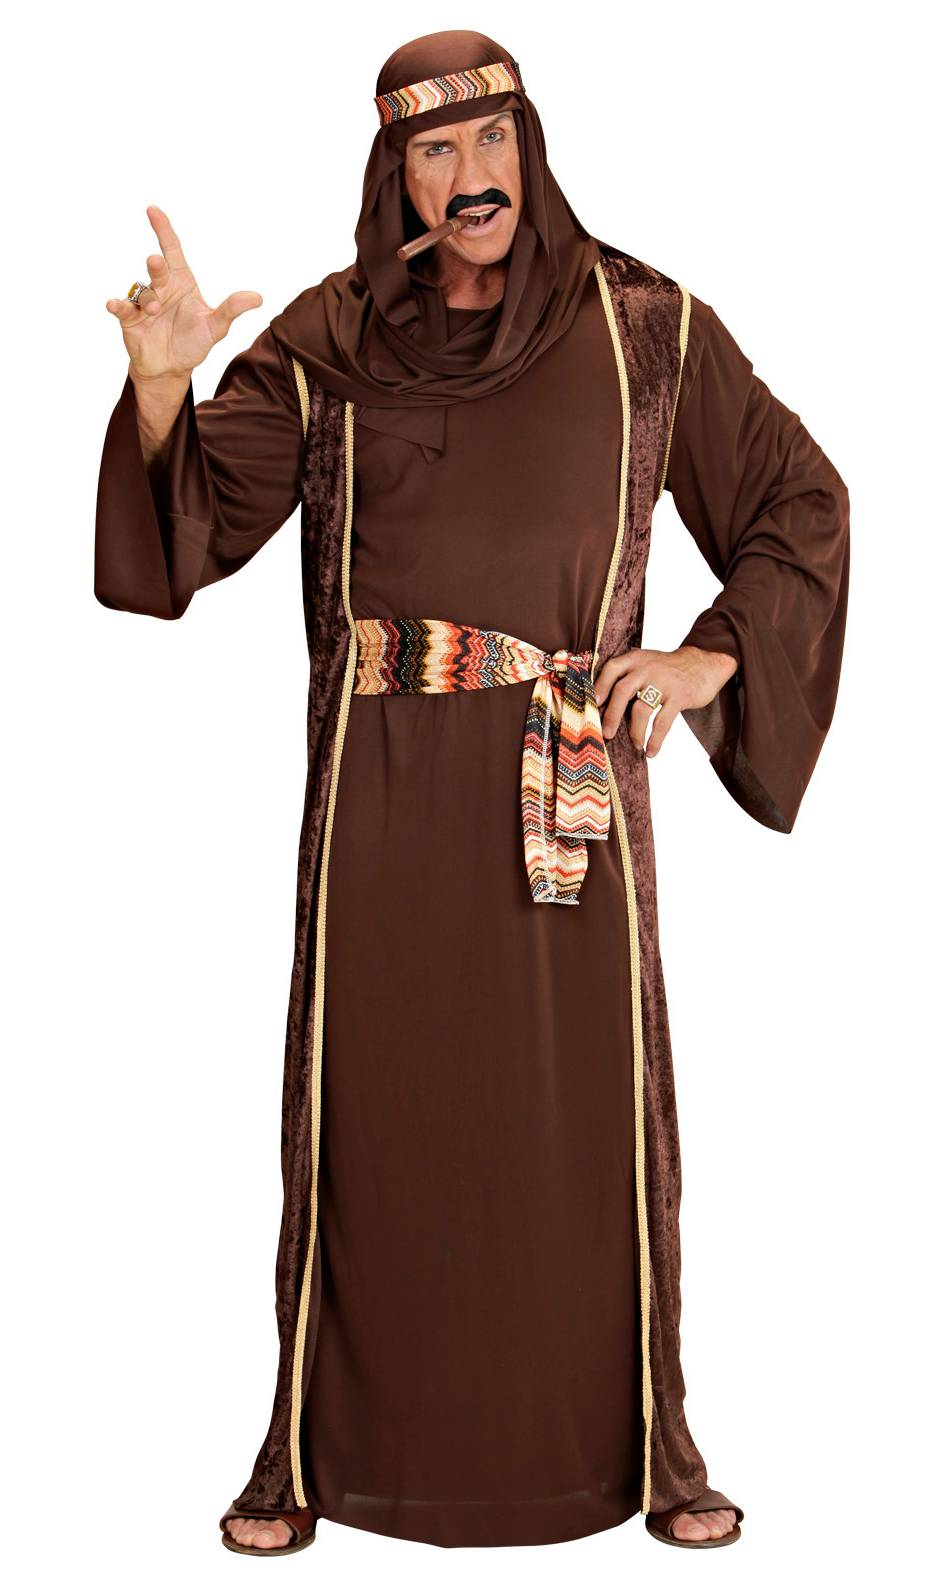 Costume sheik marron homme